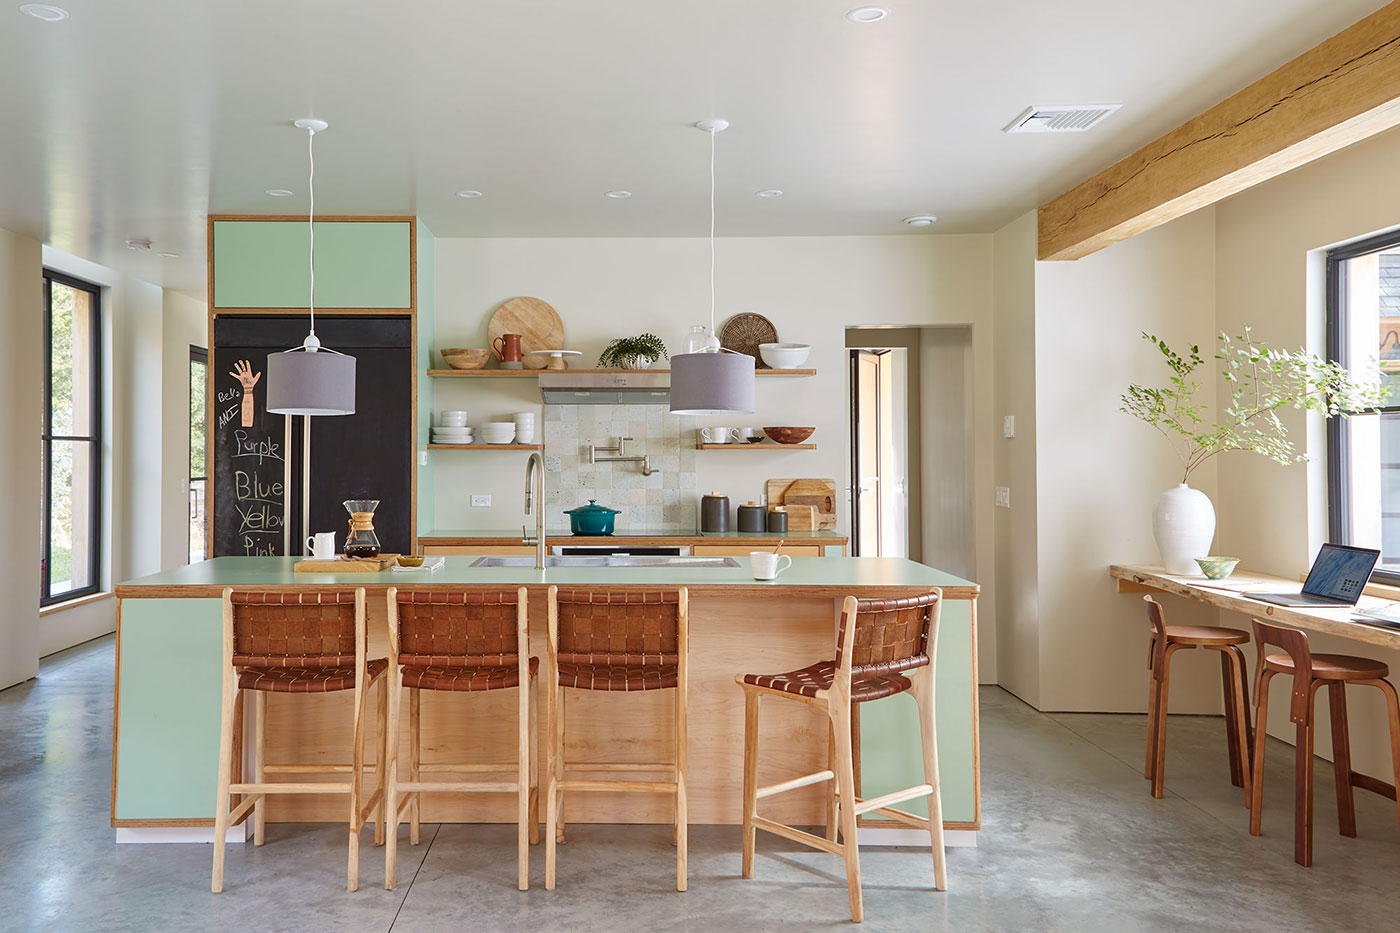 Sustainable kitchen design by Paul Weber Architecture